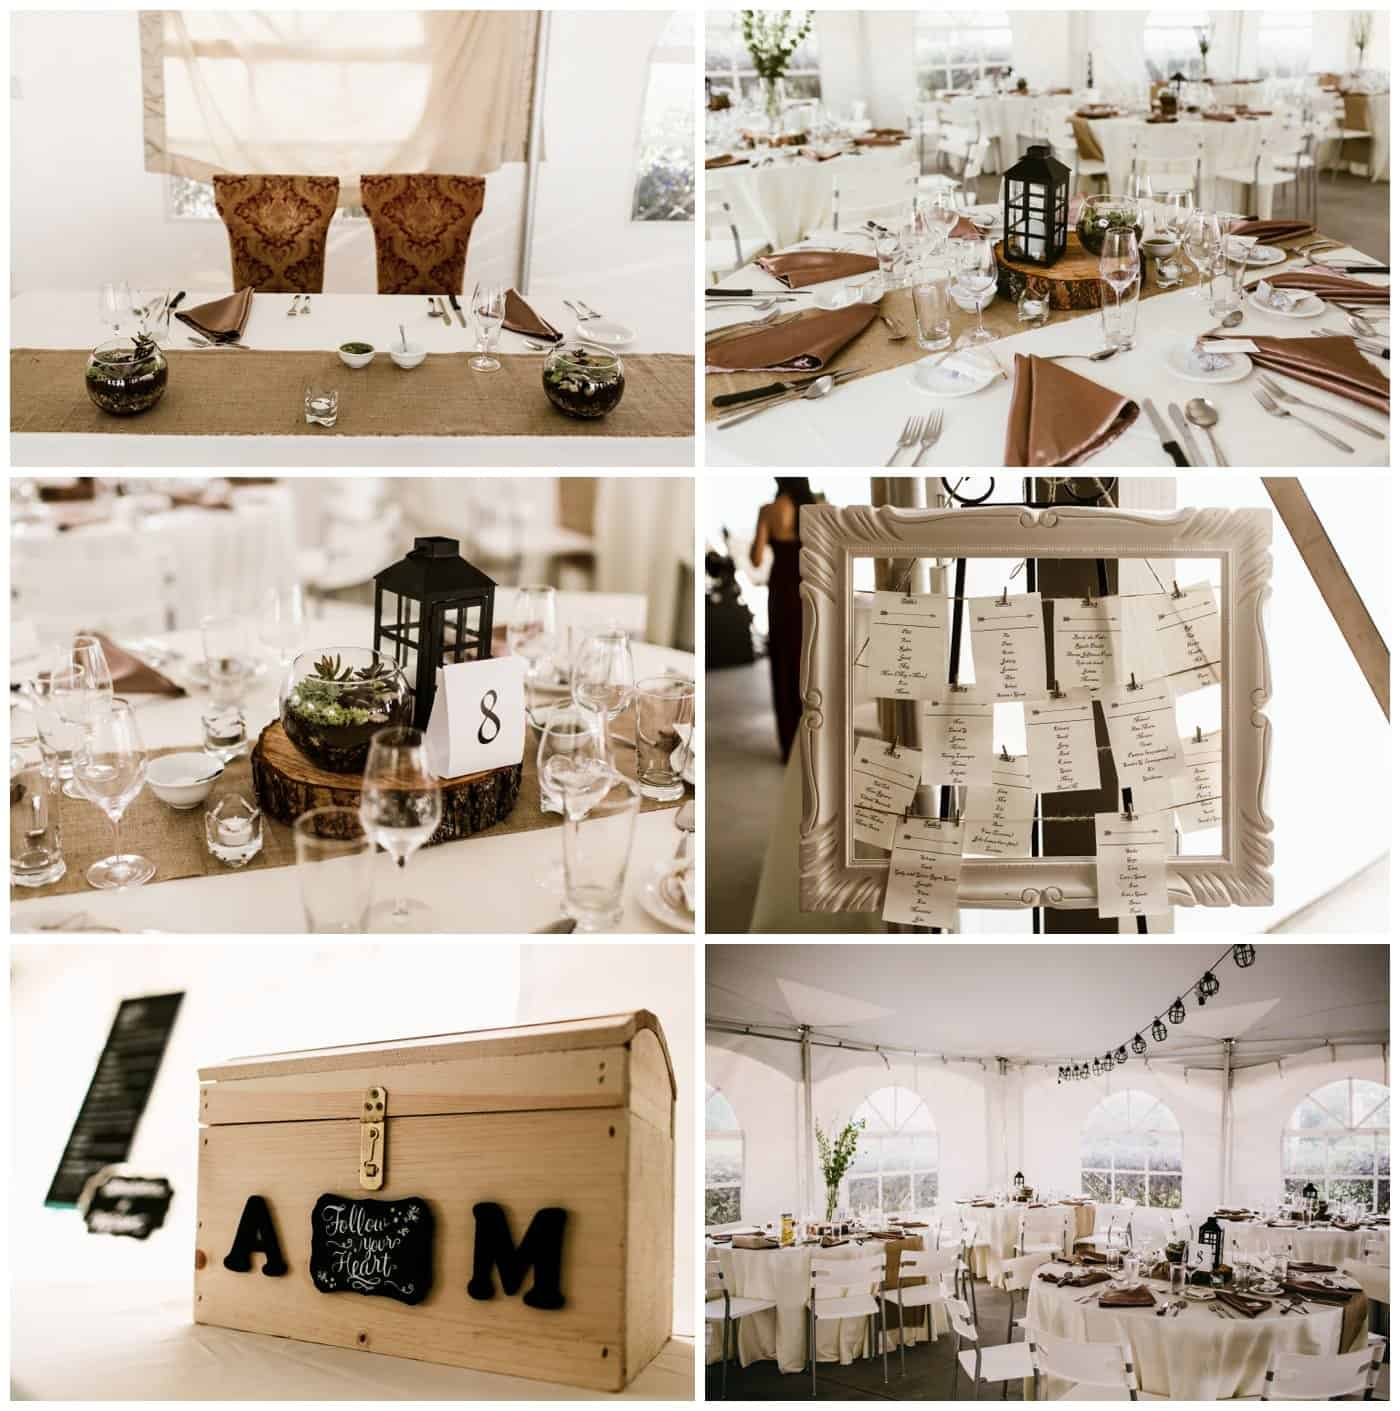 coteau rougemont wedding decor